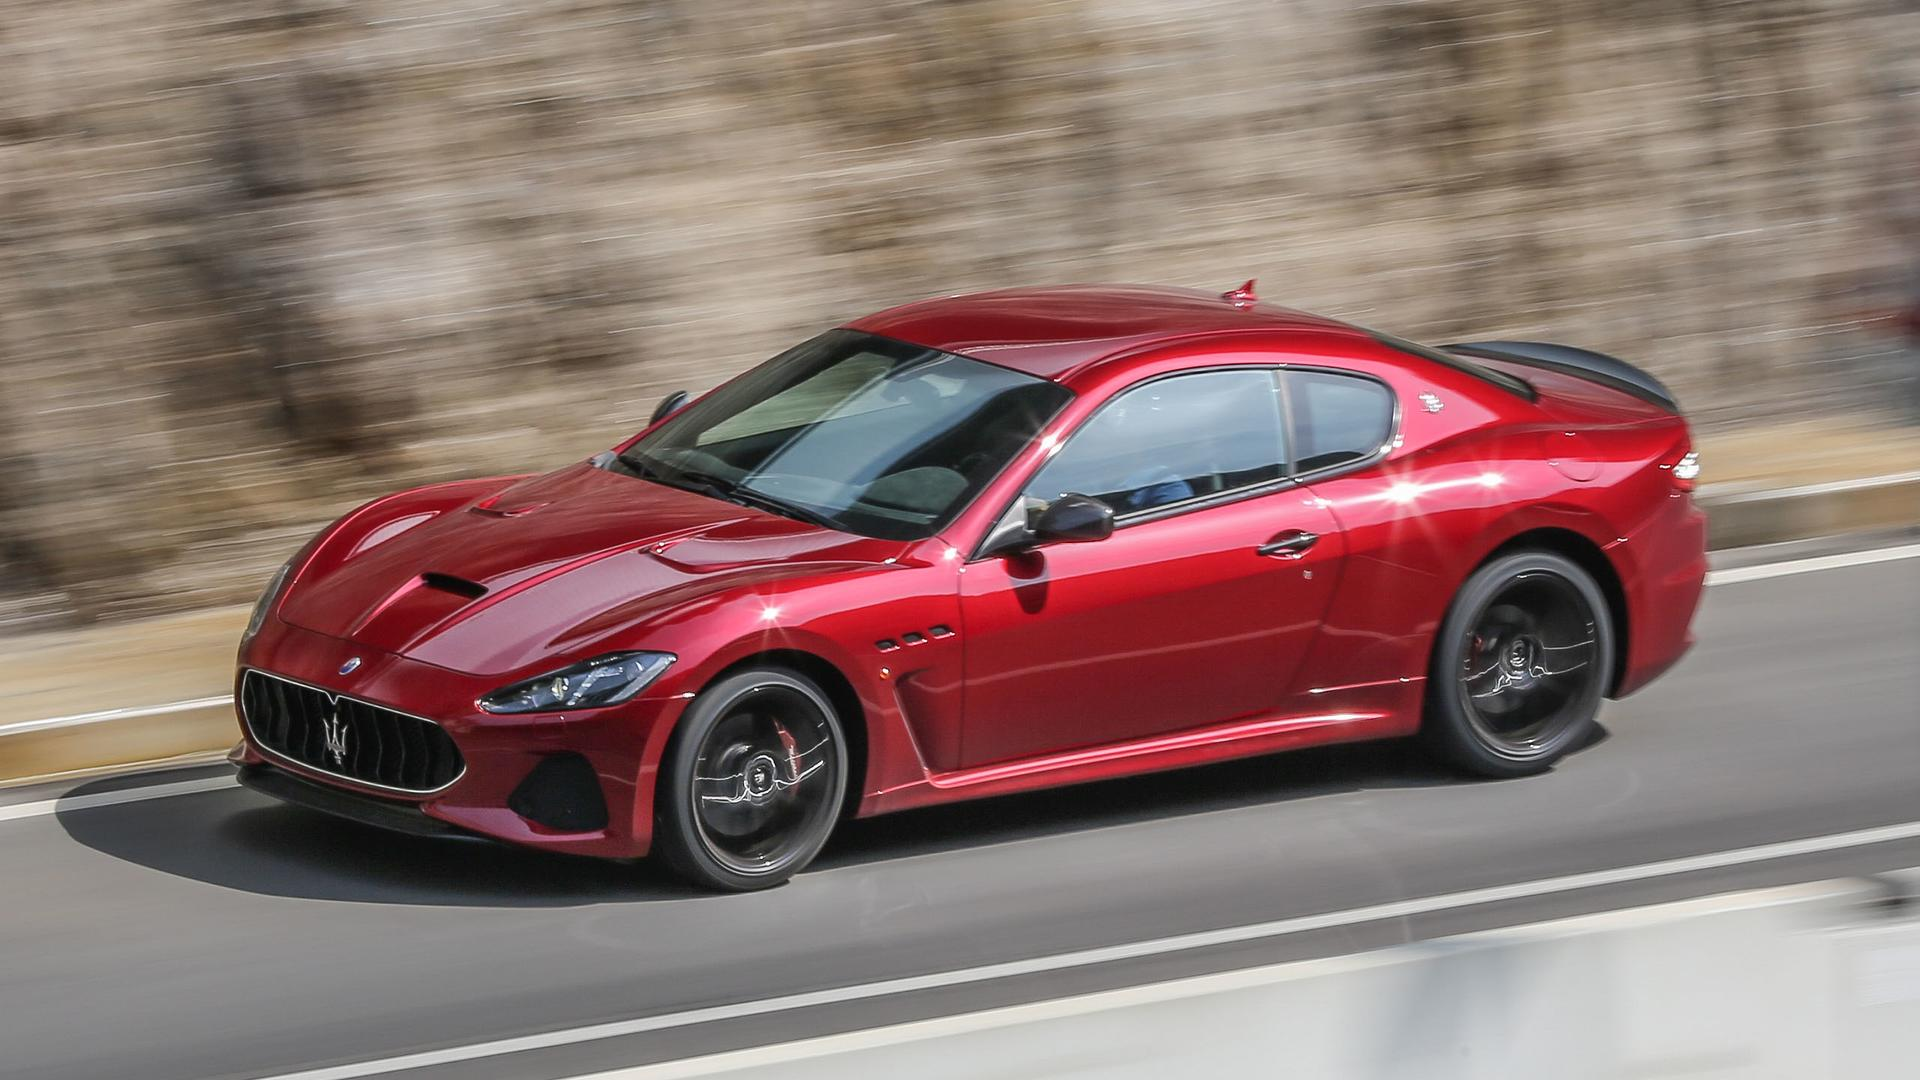 Maserati Granturismo Mc >> 2018 Maserati GranTurismo First Drive: Resounding Revival